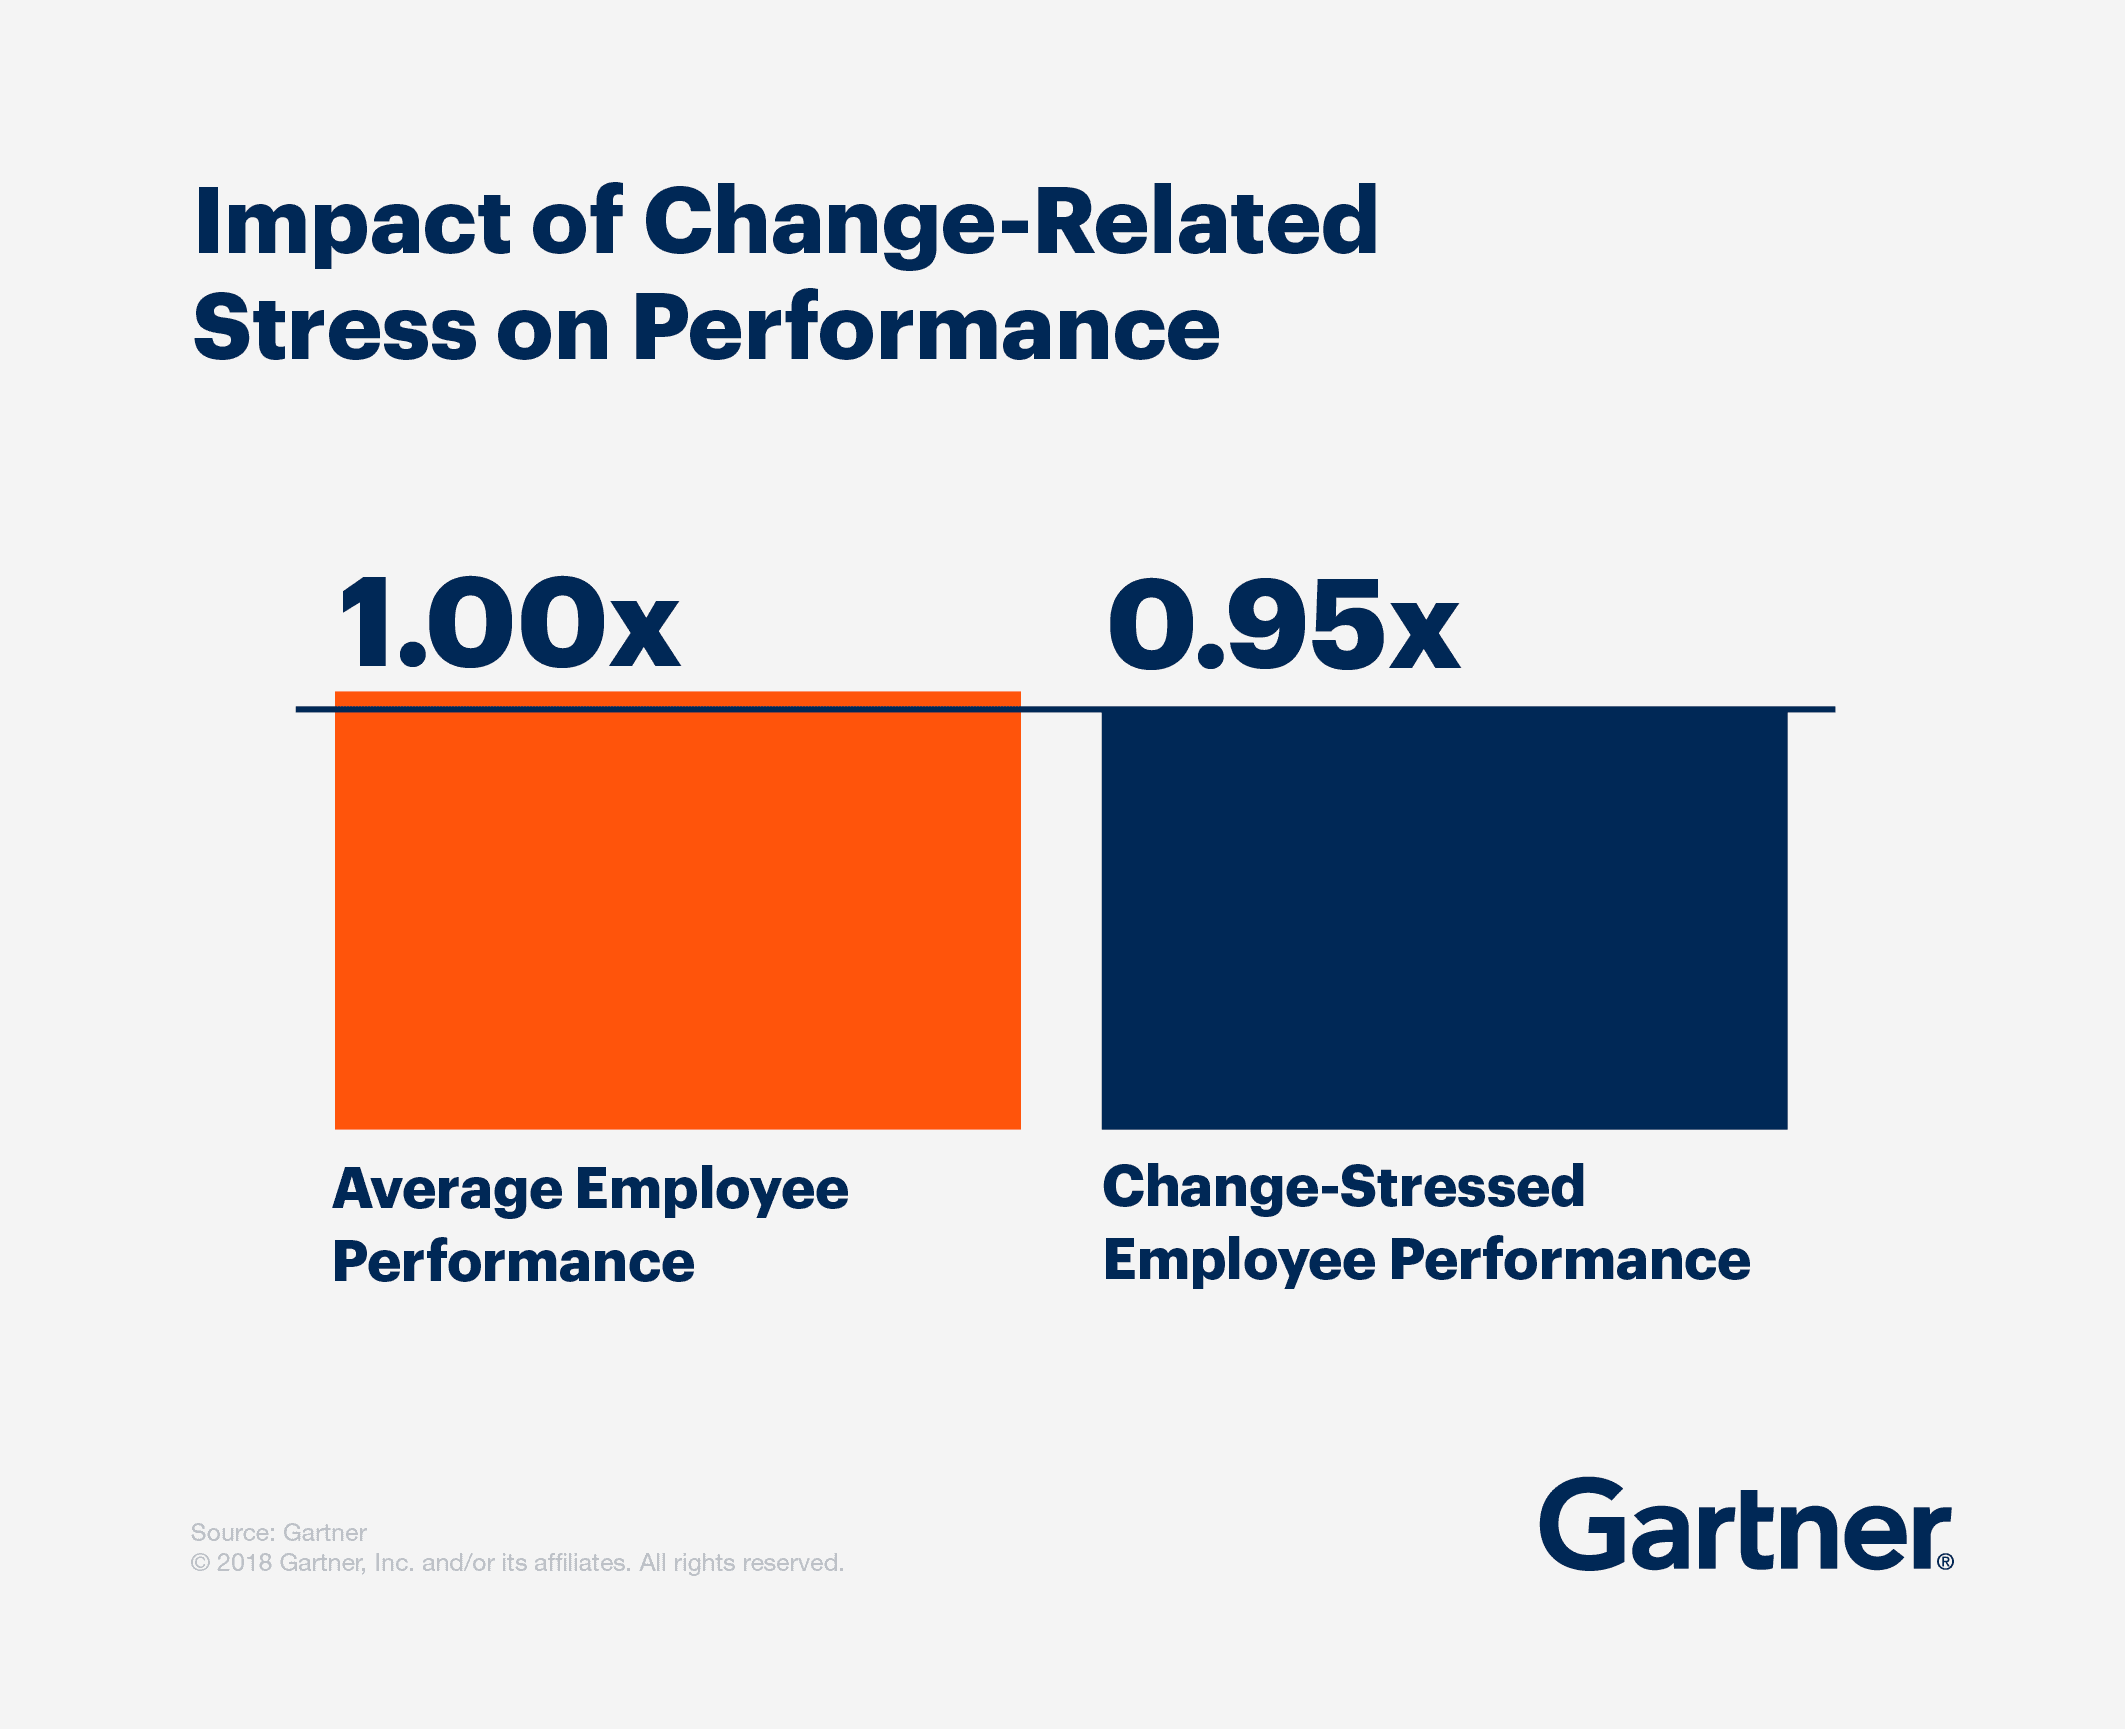 The impact of change-related stress on performance: Change-stressed employees perform 5% worse than average.